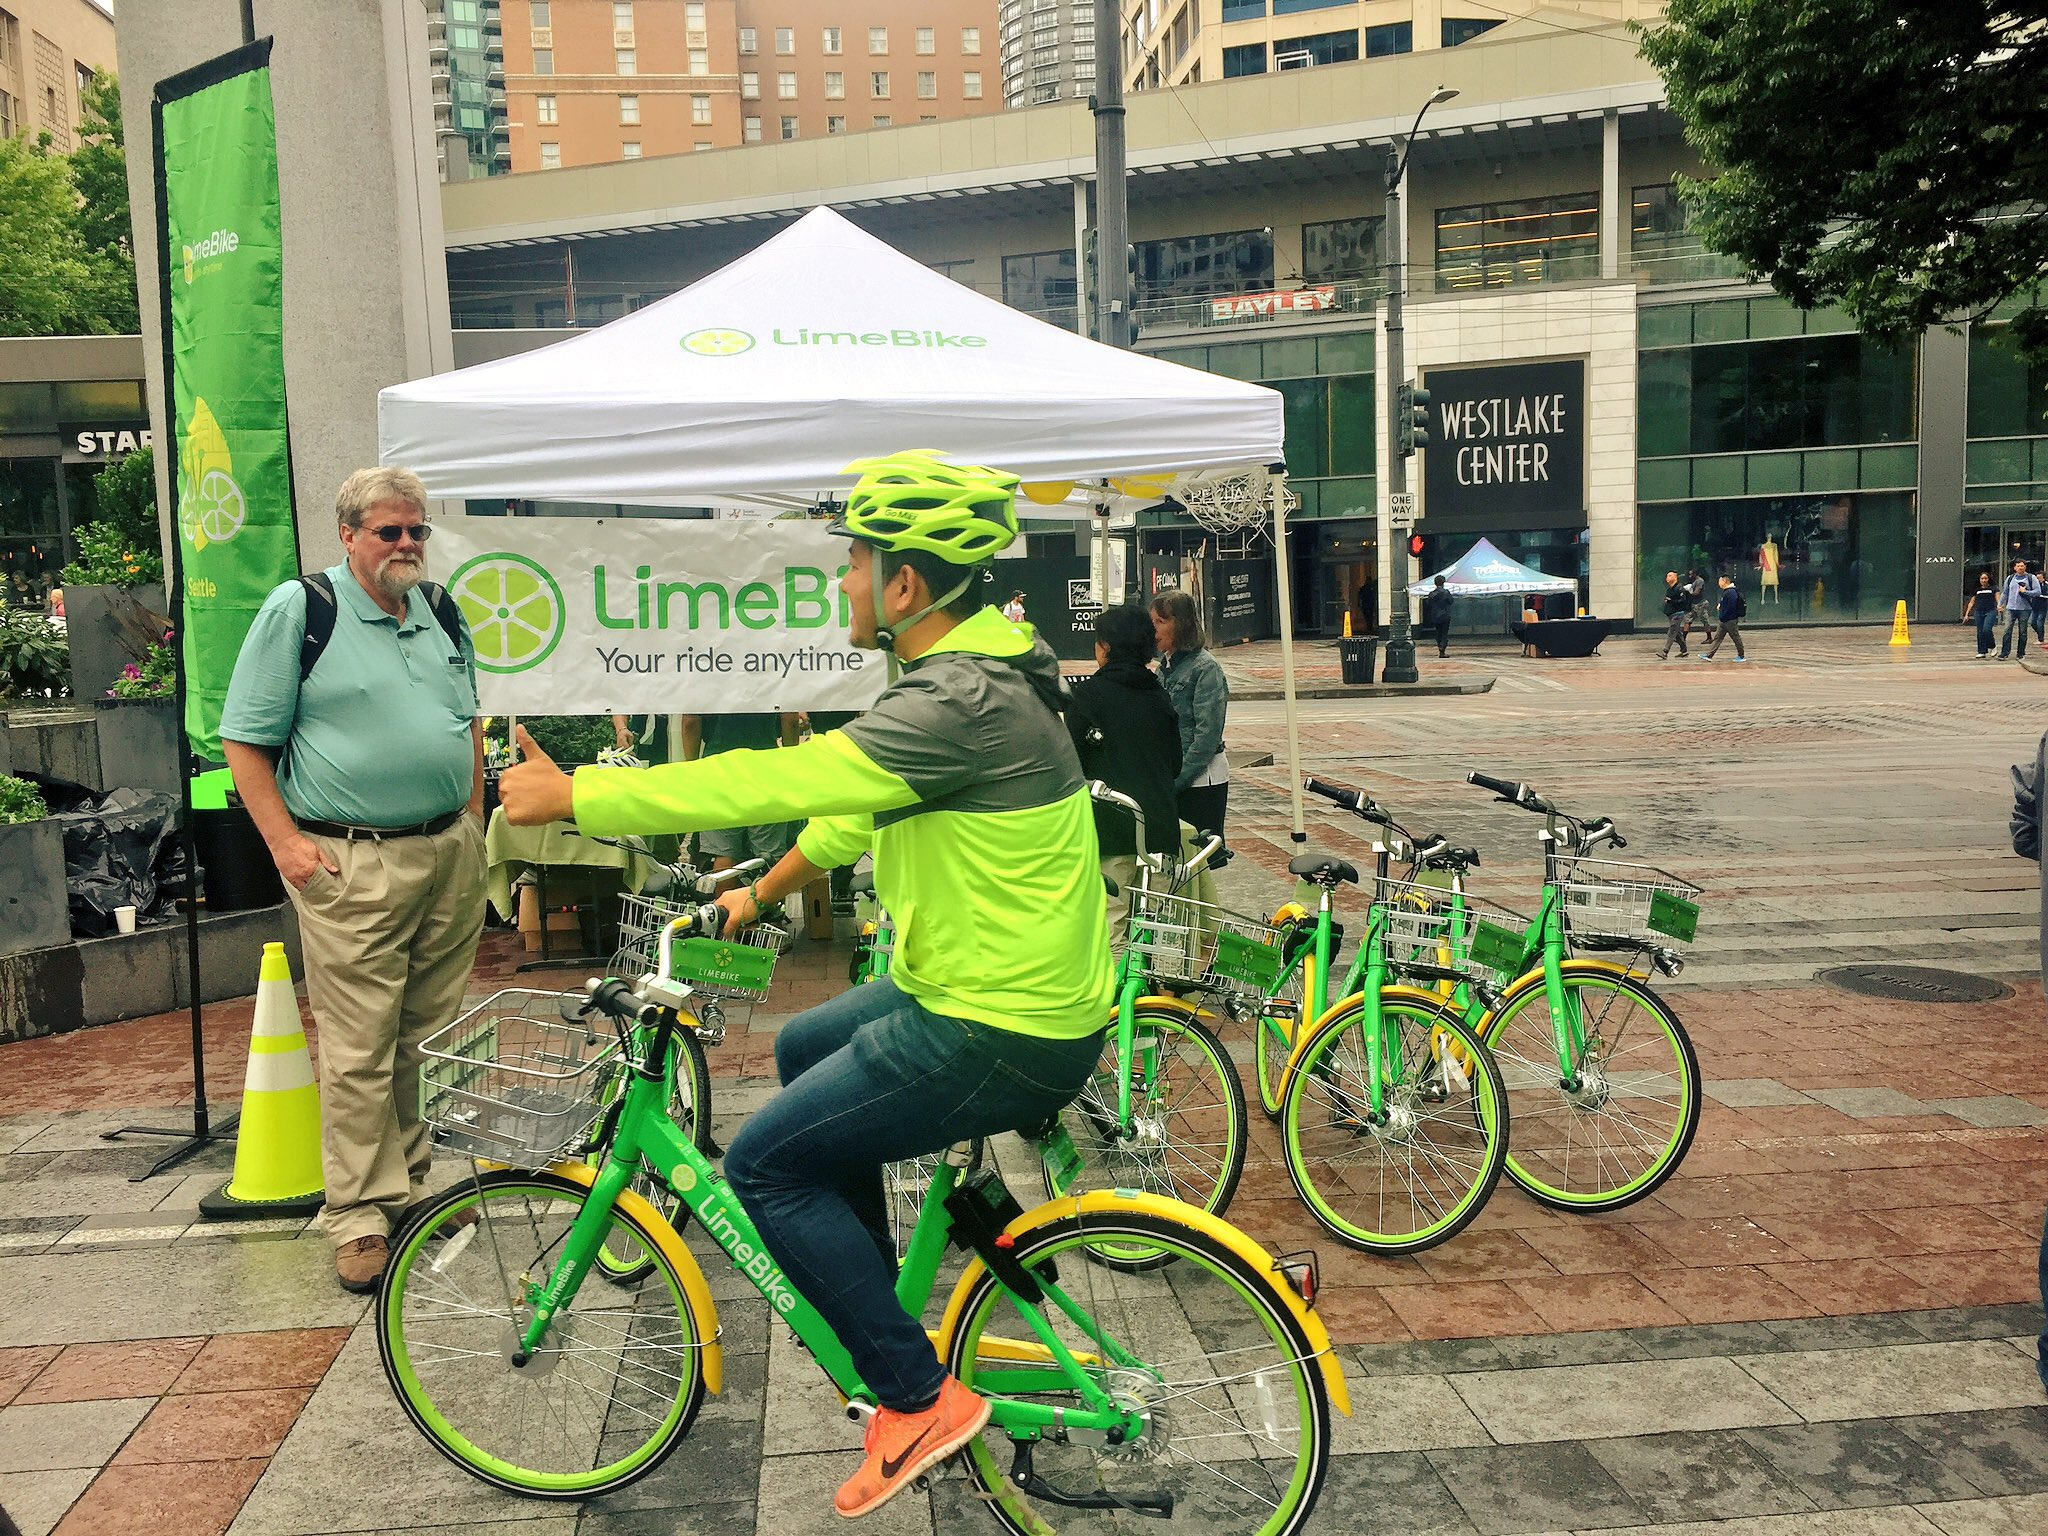 how to ride limebike for free